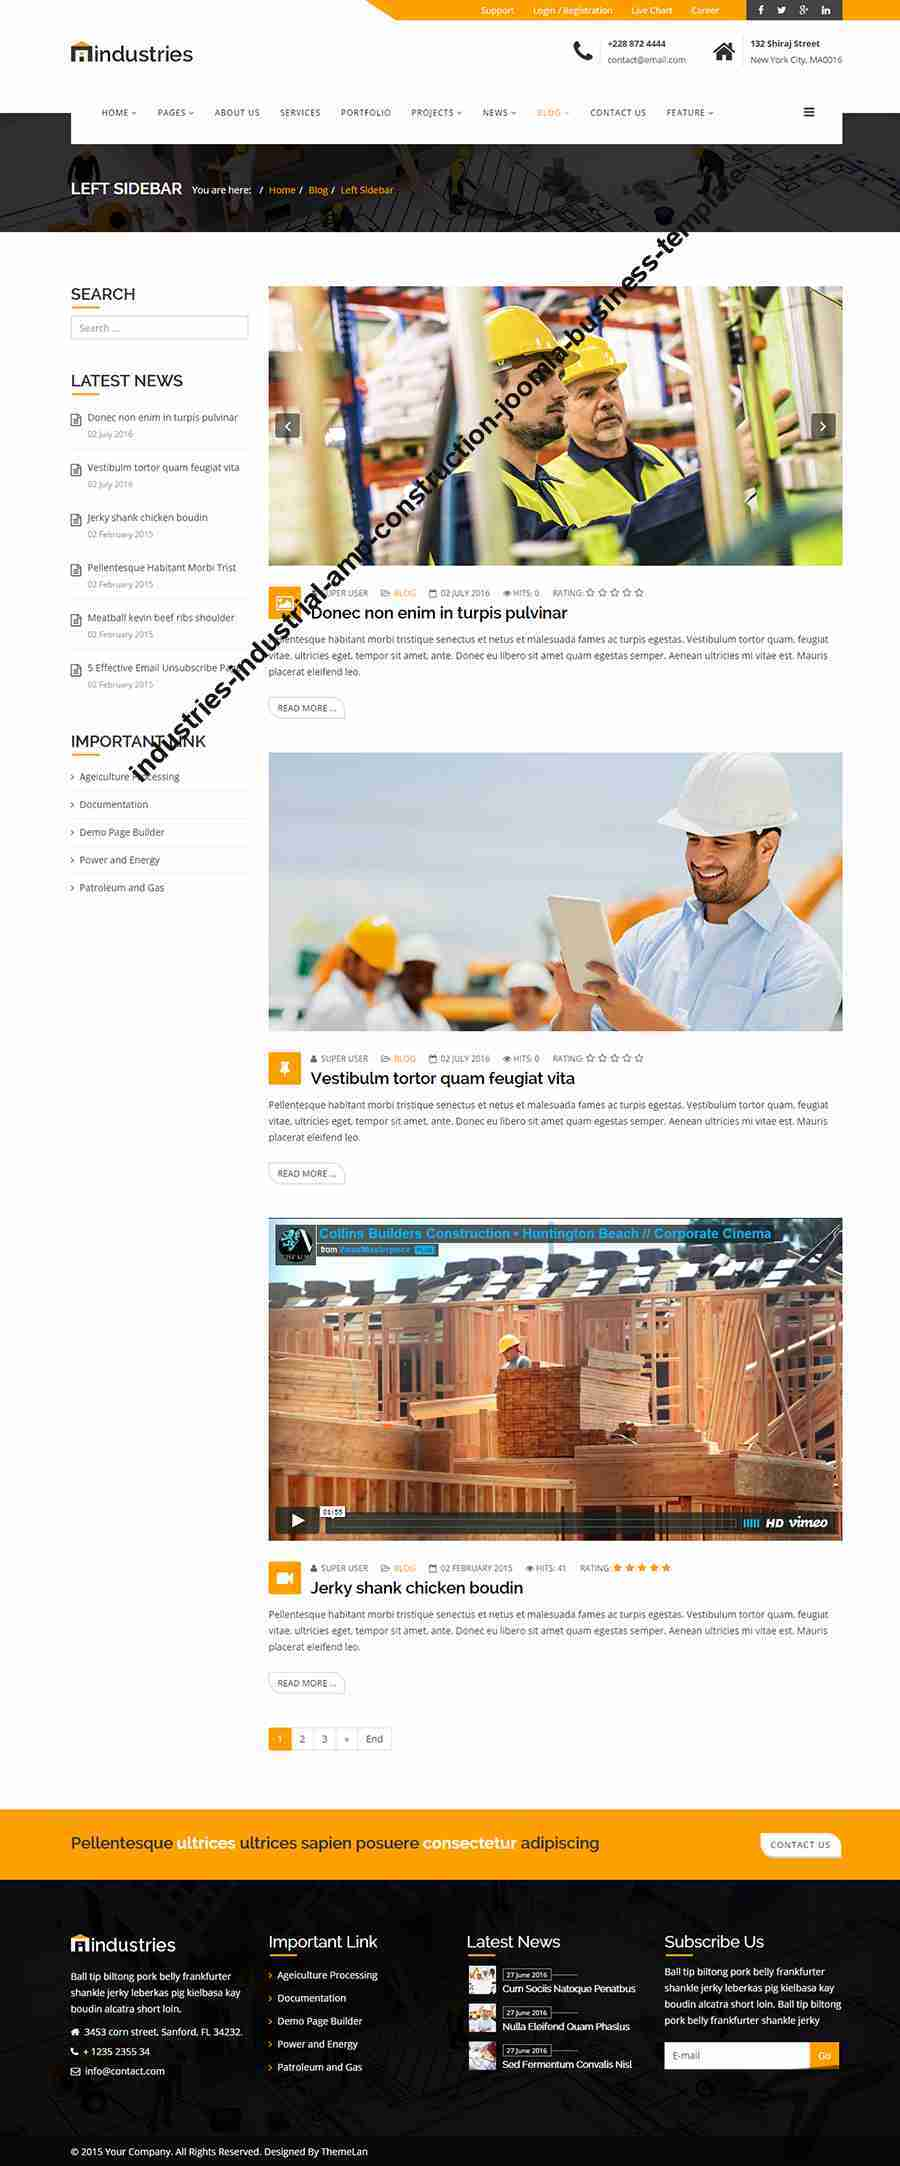 https://images.besthemes.com/images/h1_industries-industrial-amp-construction-joomla-business-template14-_-195277563/14_blog.png